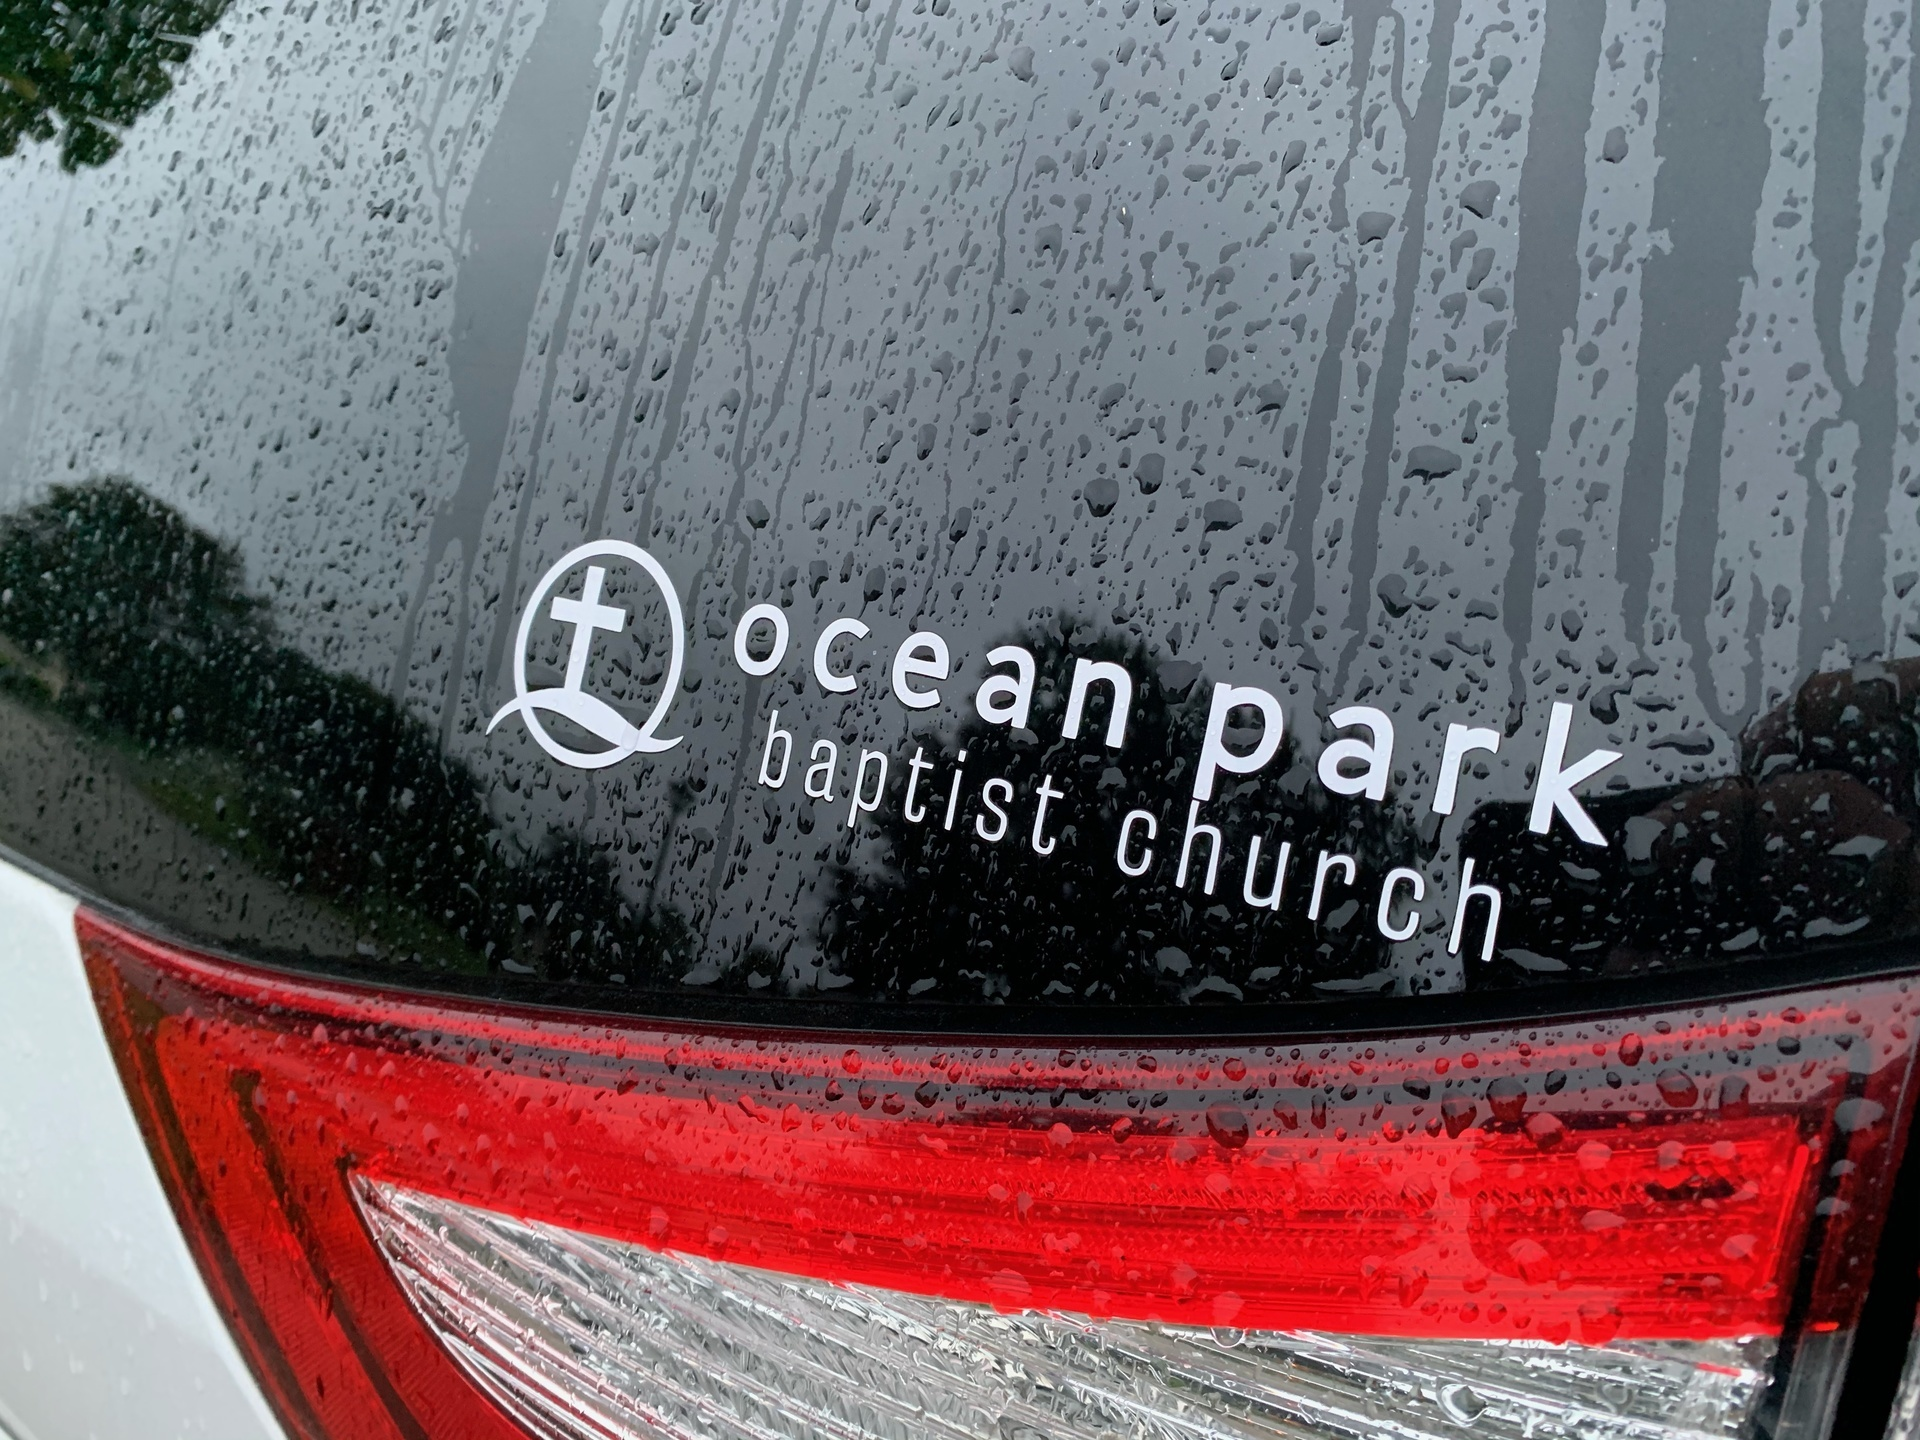 Christian's photograph of their Customizable One-Color Transfer Sticker